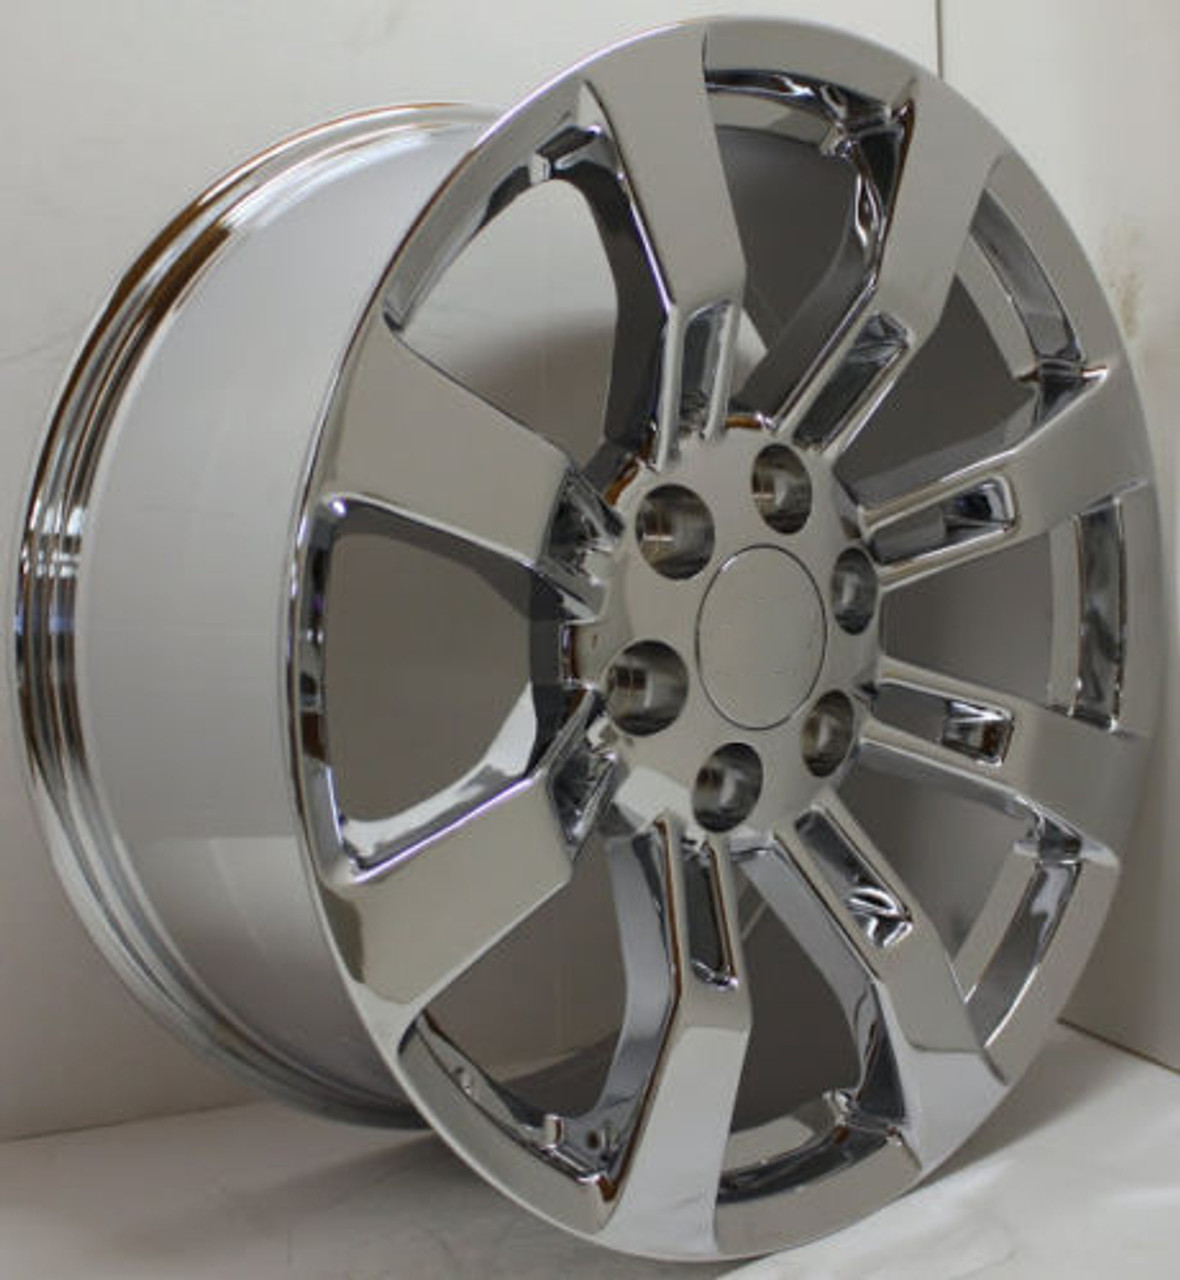 "Chrome 20"" Eight Spoke Wheels for GMC Sierra, Yukon, Denali - New Set of 4"